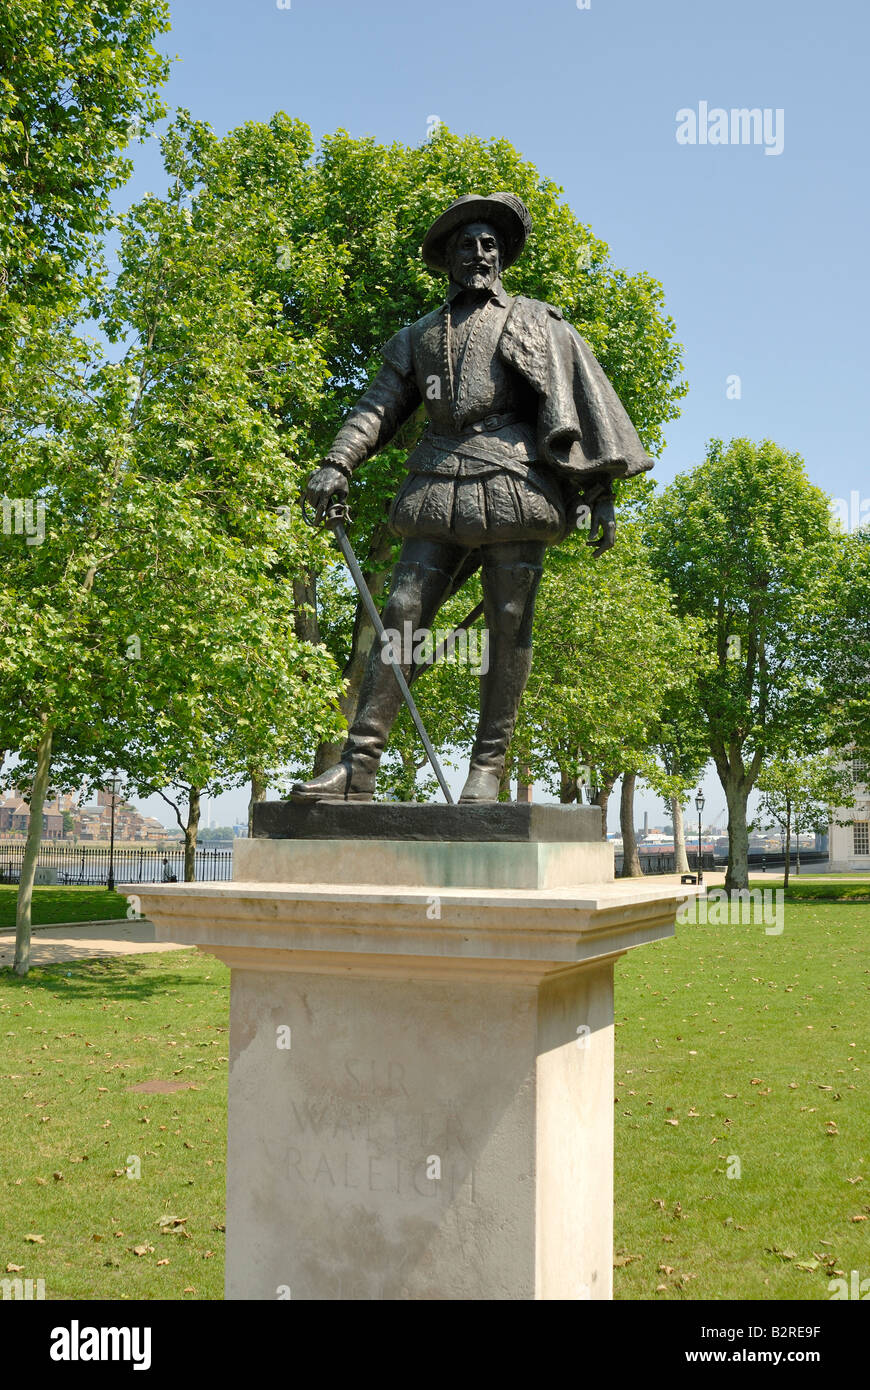 Sir Walter Raleigh statue,Greenwich, London - Stock Image